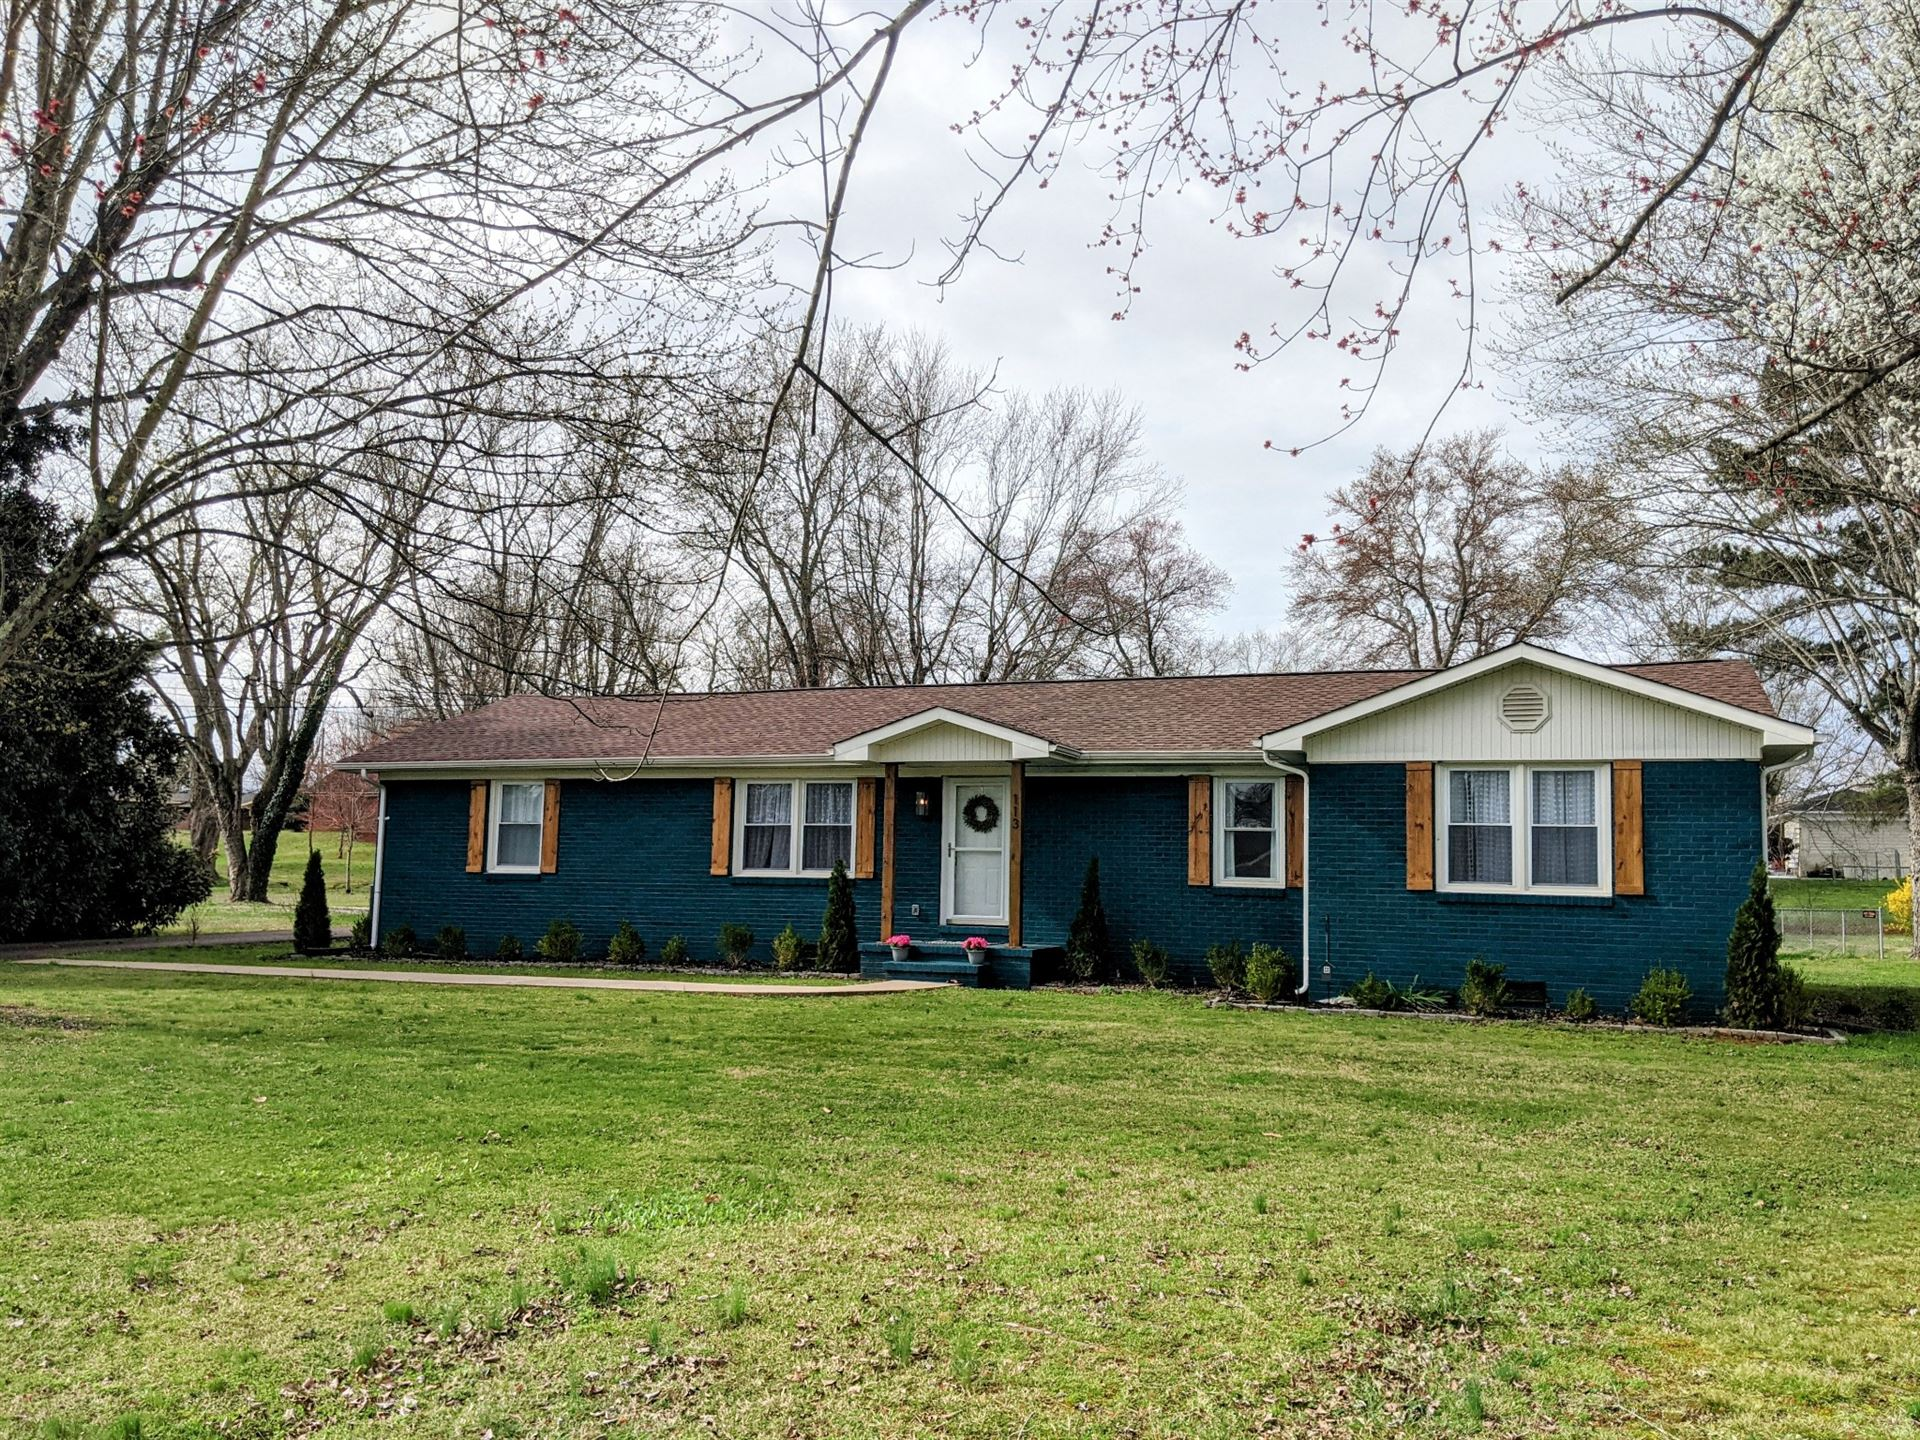 113 Westwood 5th Ave, McMinnville, TN 37110 - MLS#: 2236145